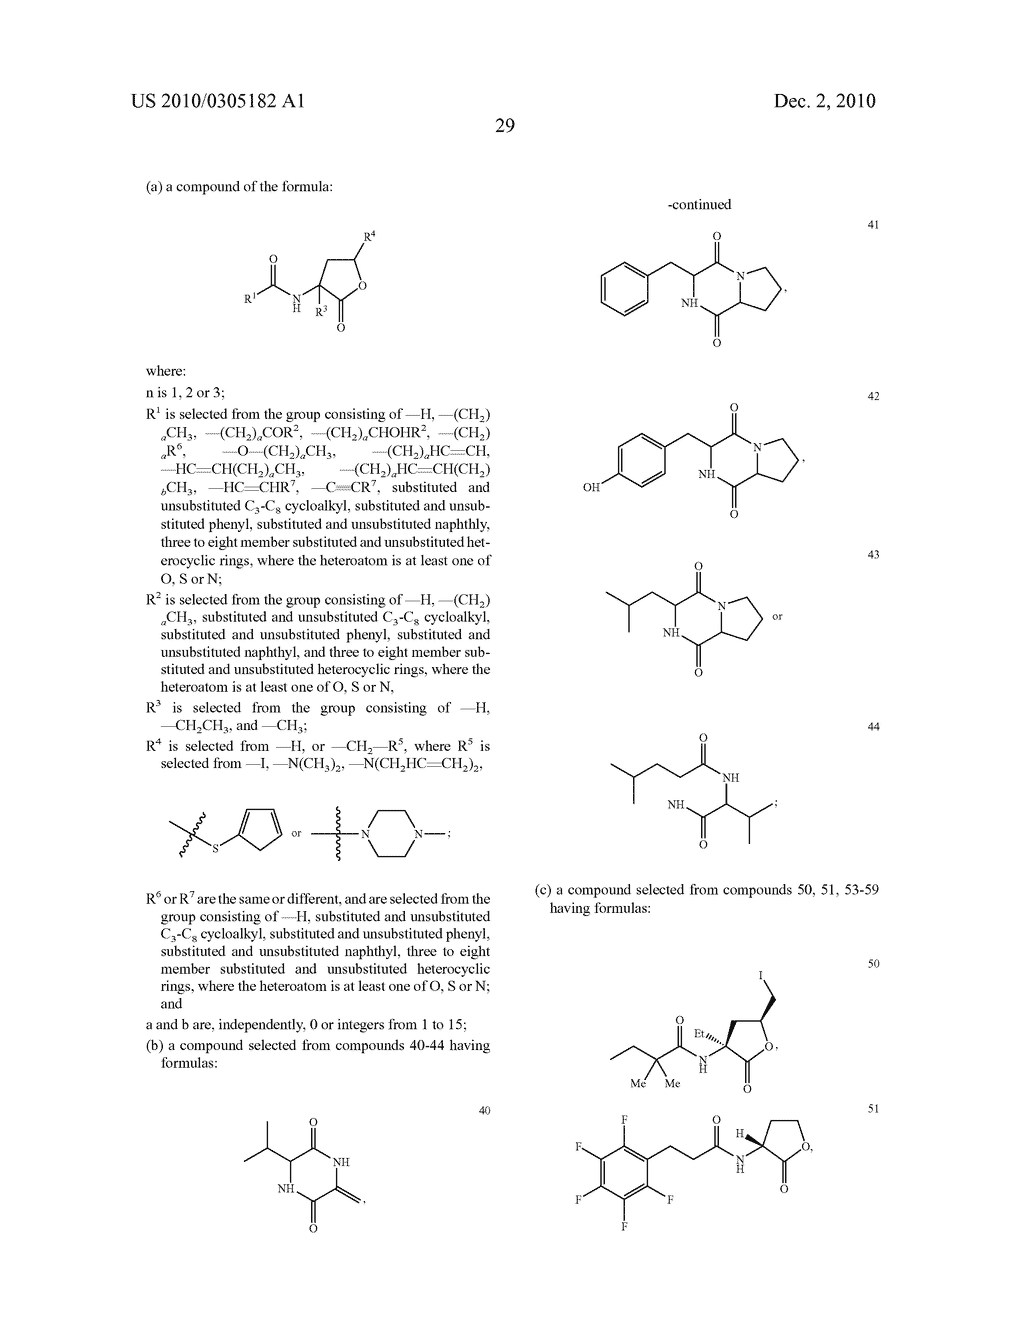 COMPOUNDS AND METHODS FOR MODULATING COMMUNICATION AND VIRULENCE IN QUORUM SENSING BACTERIA - diagram, schematic, and image 106